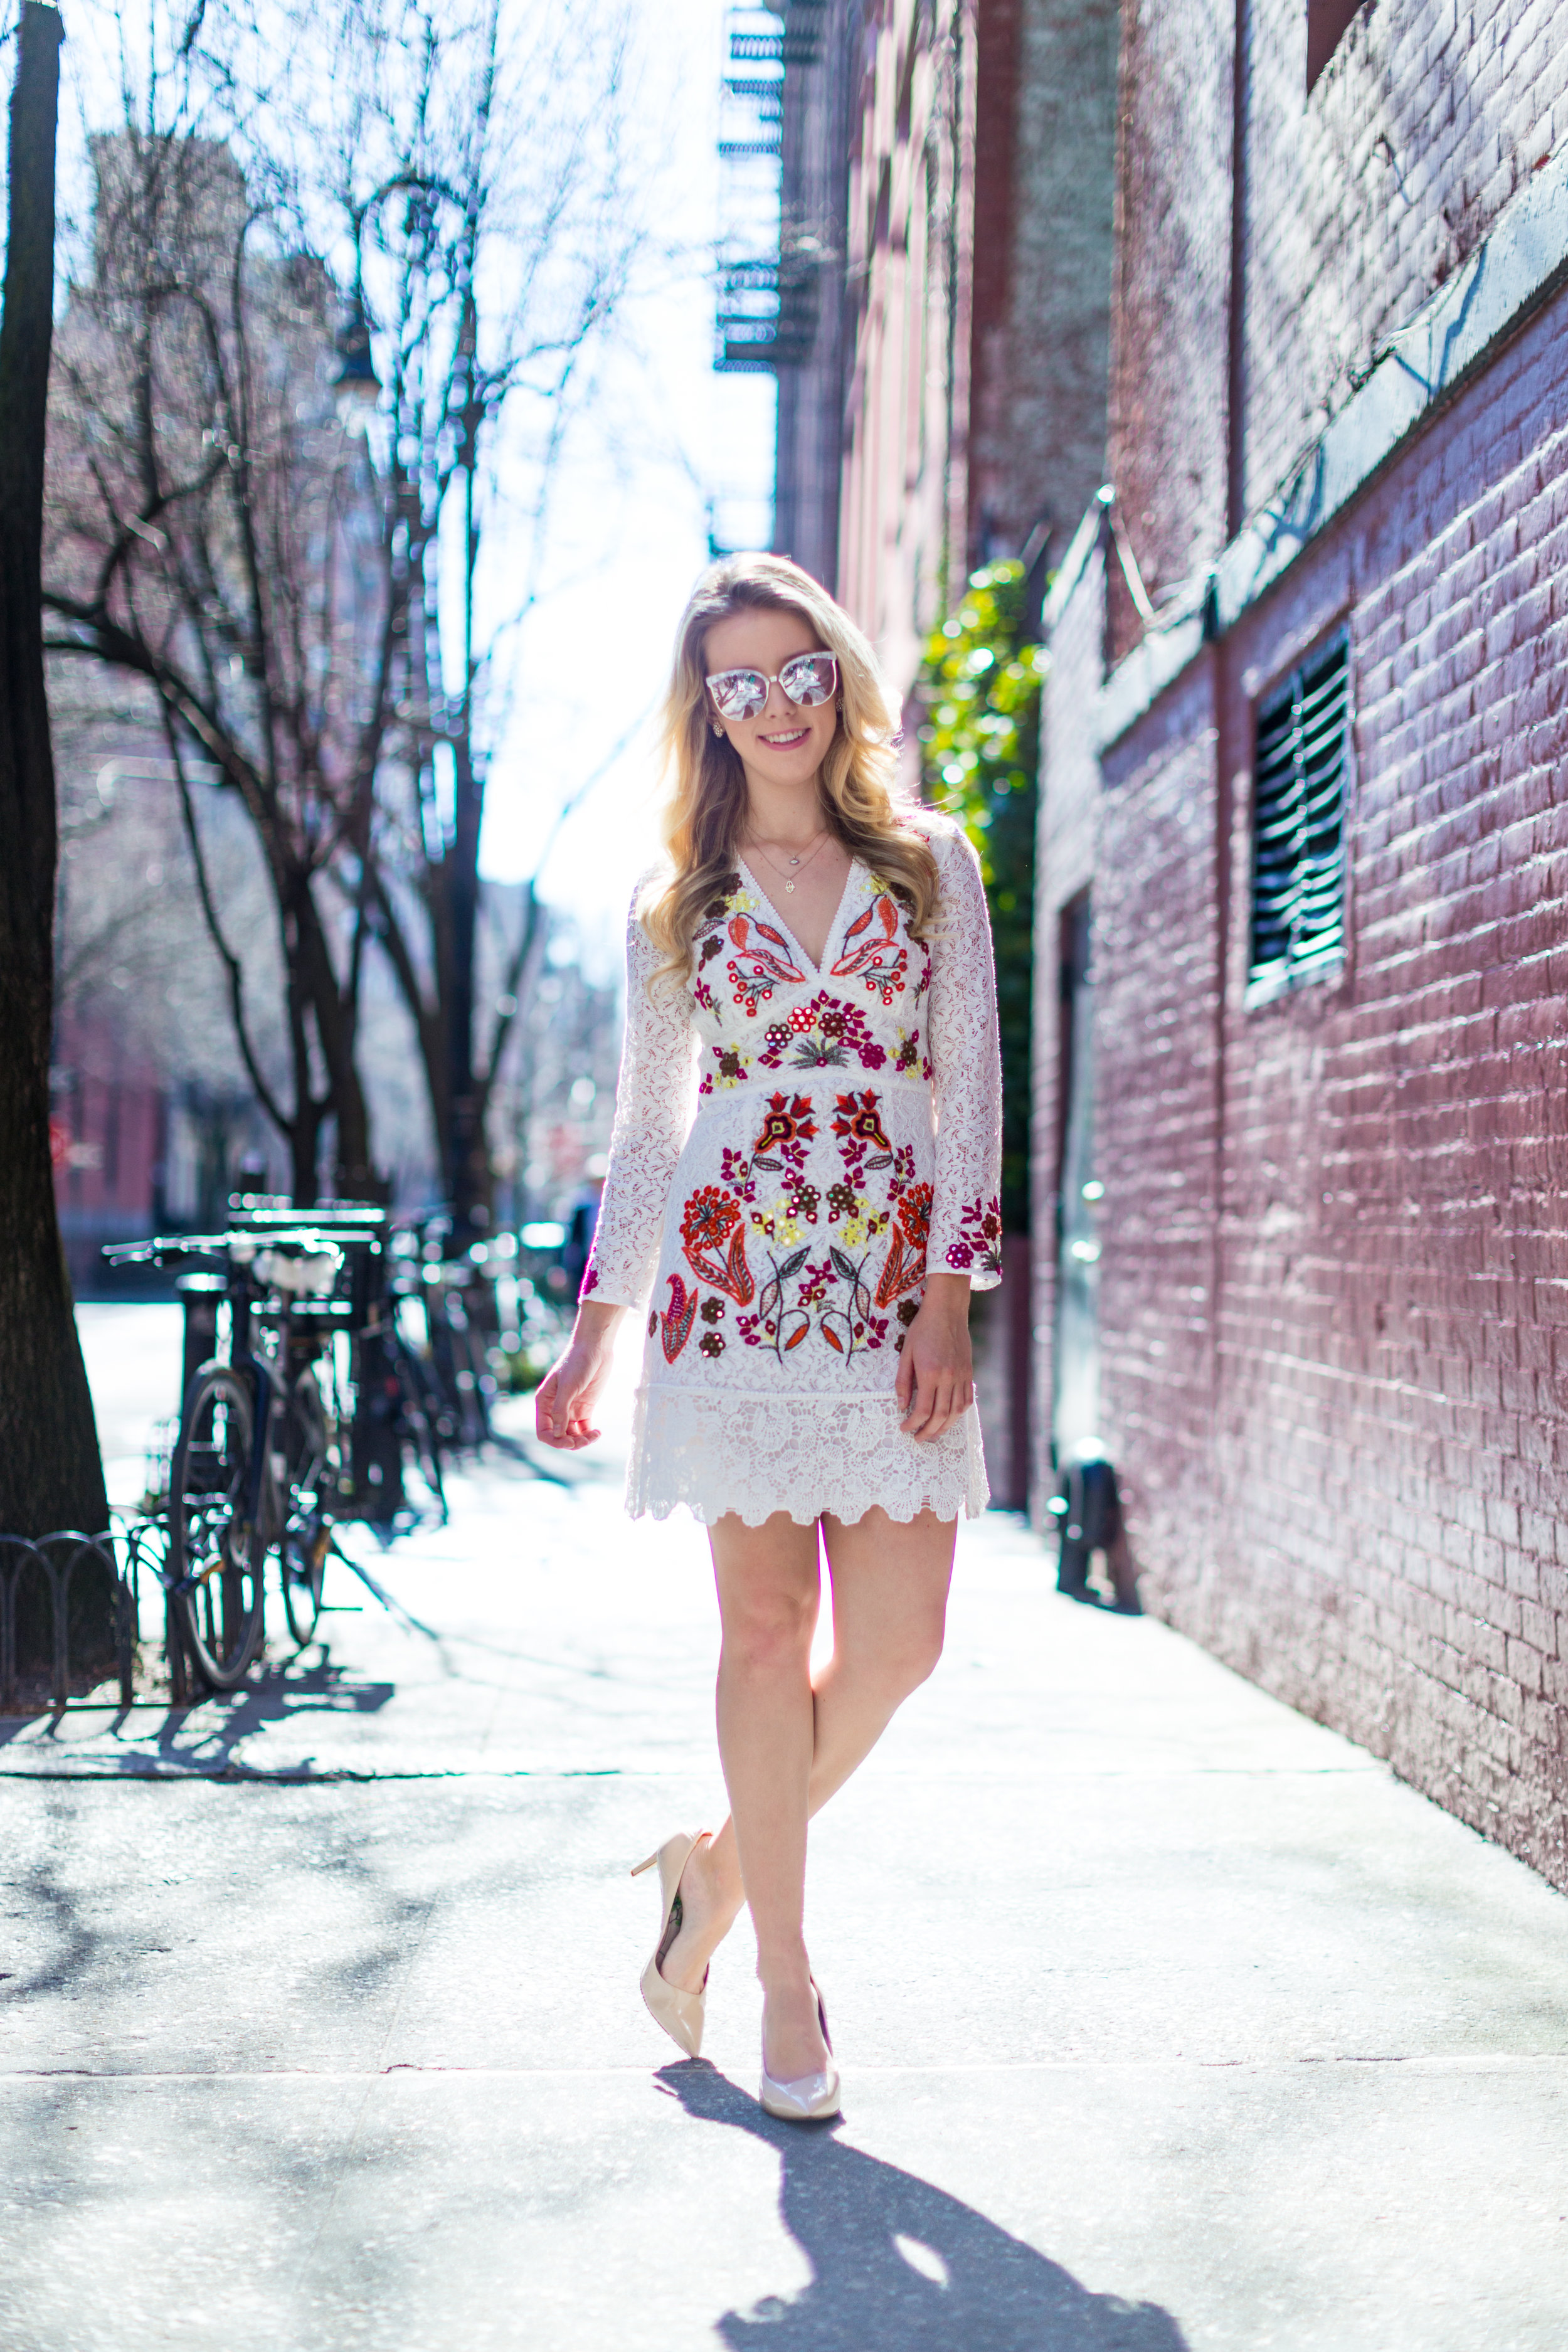 West Village NYC Embroidered Lace Outfit-9.jpg